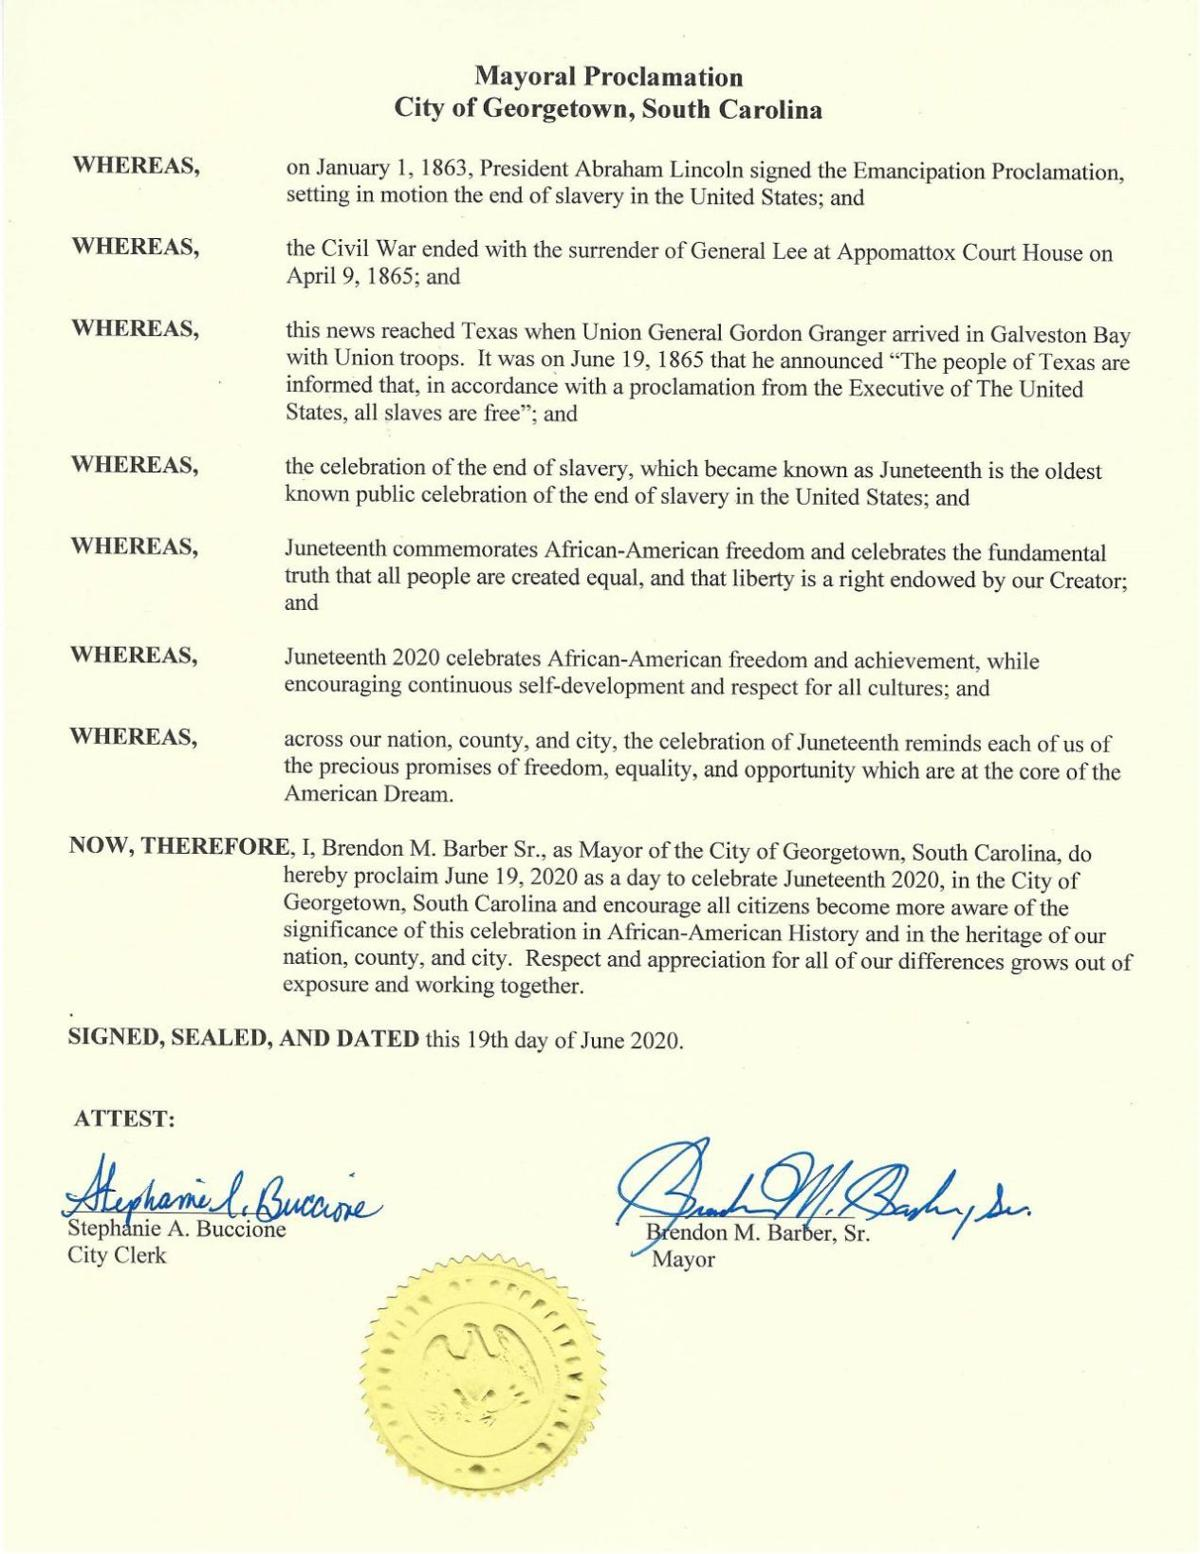 Georgetown Mayoral Proclamation Juneteenth